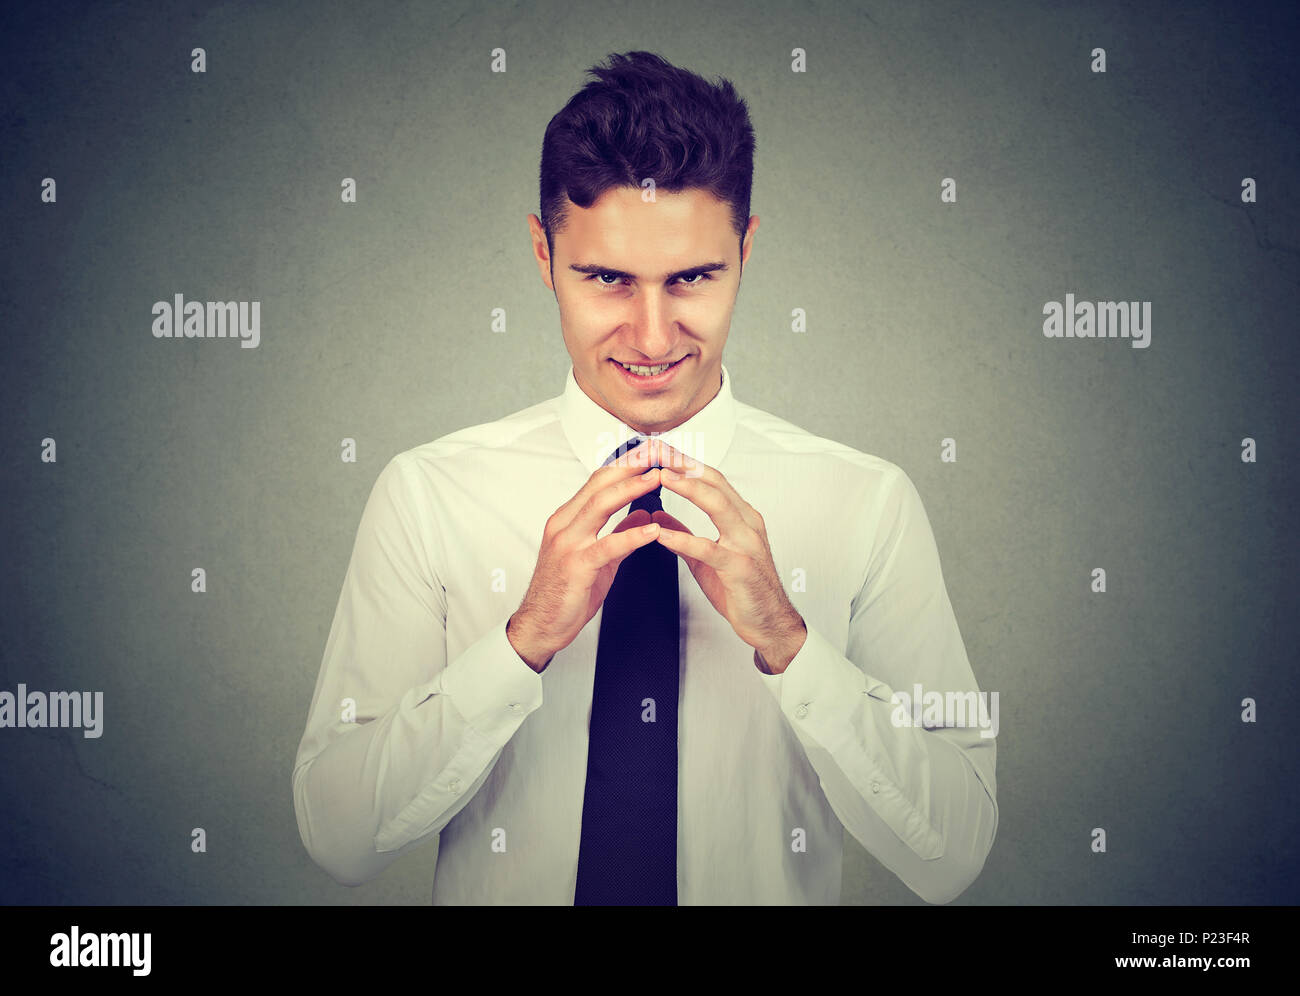 Sneaky scheming man trying to plot something isolated on gray background. Negative human emotion facial expression feeling - Stock Image